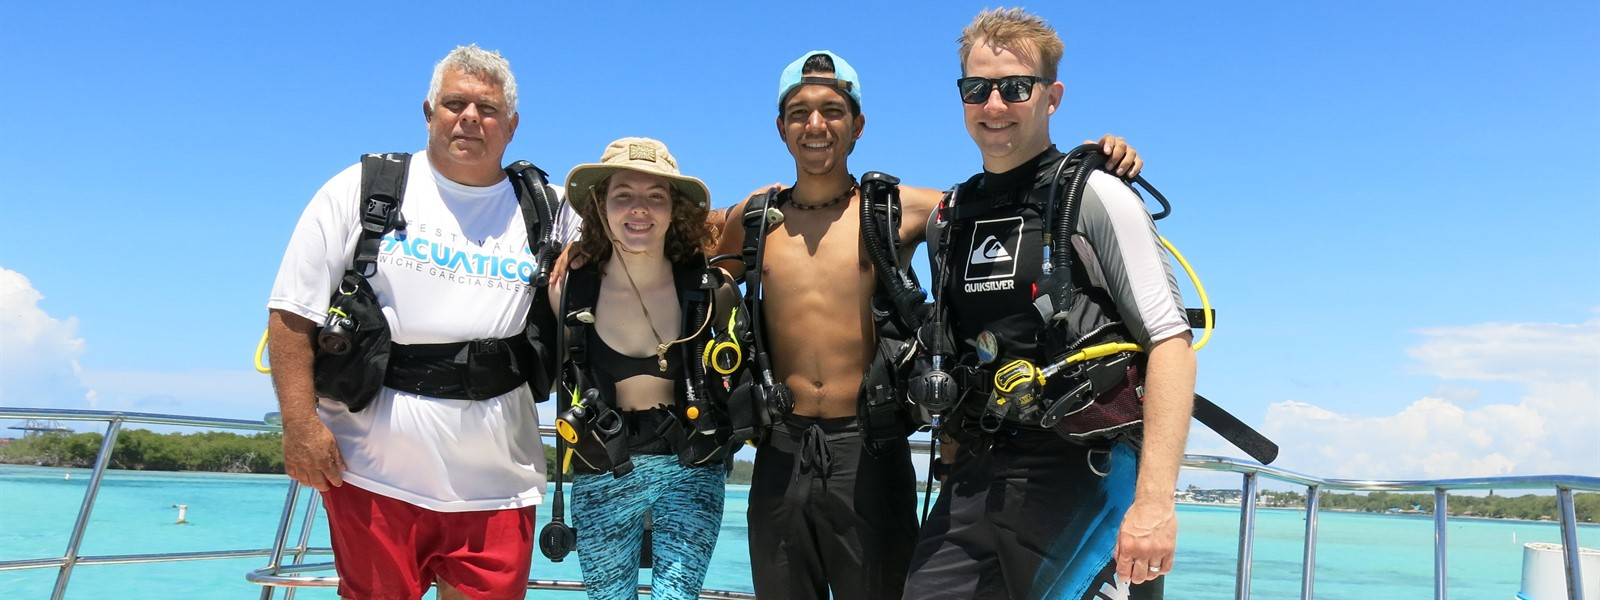 Picture of divers on a boat.